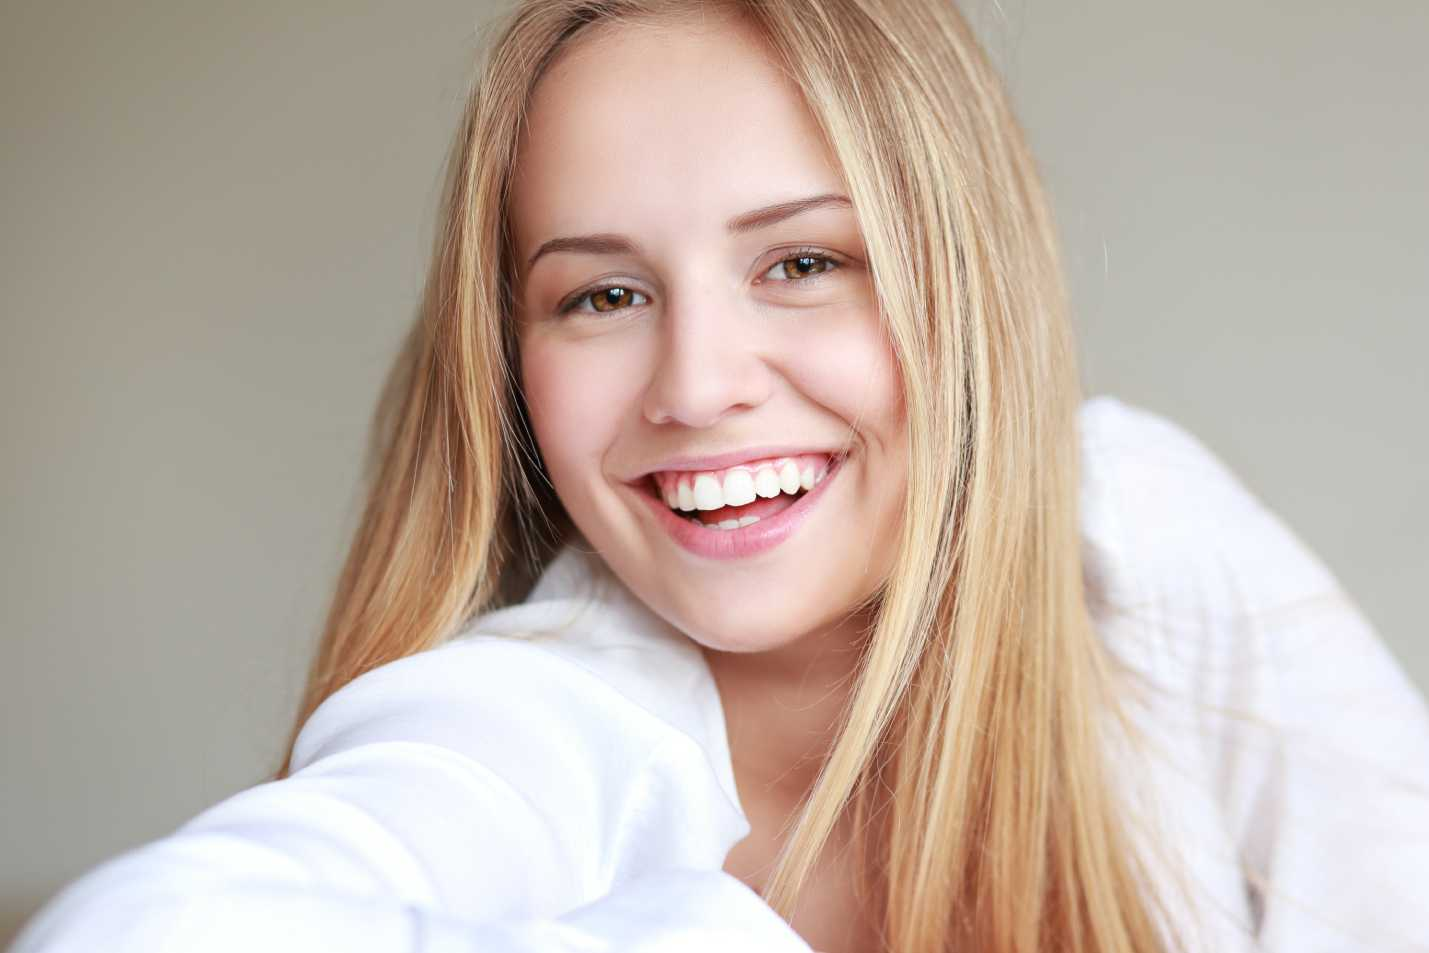 Lady smiling with beautiful teeth